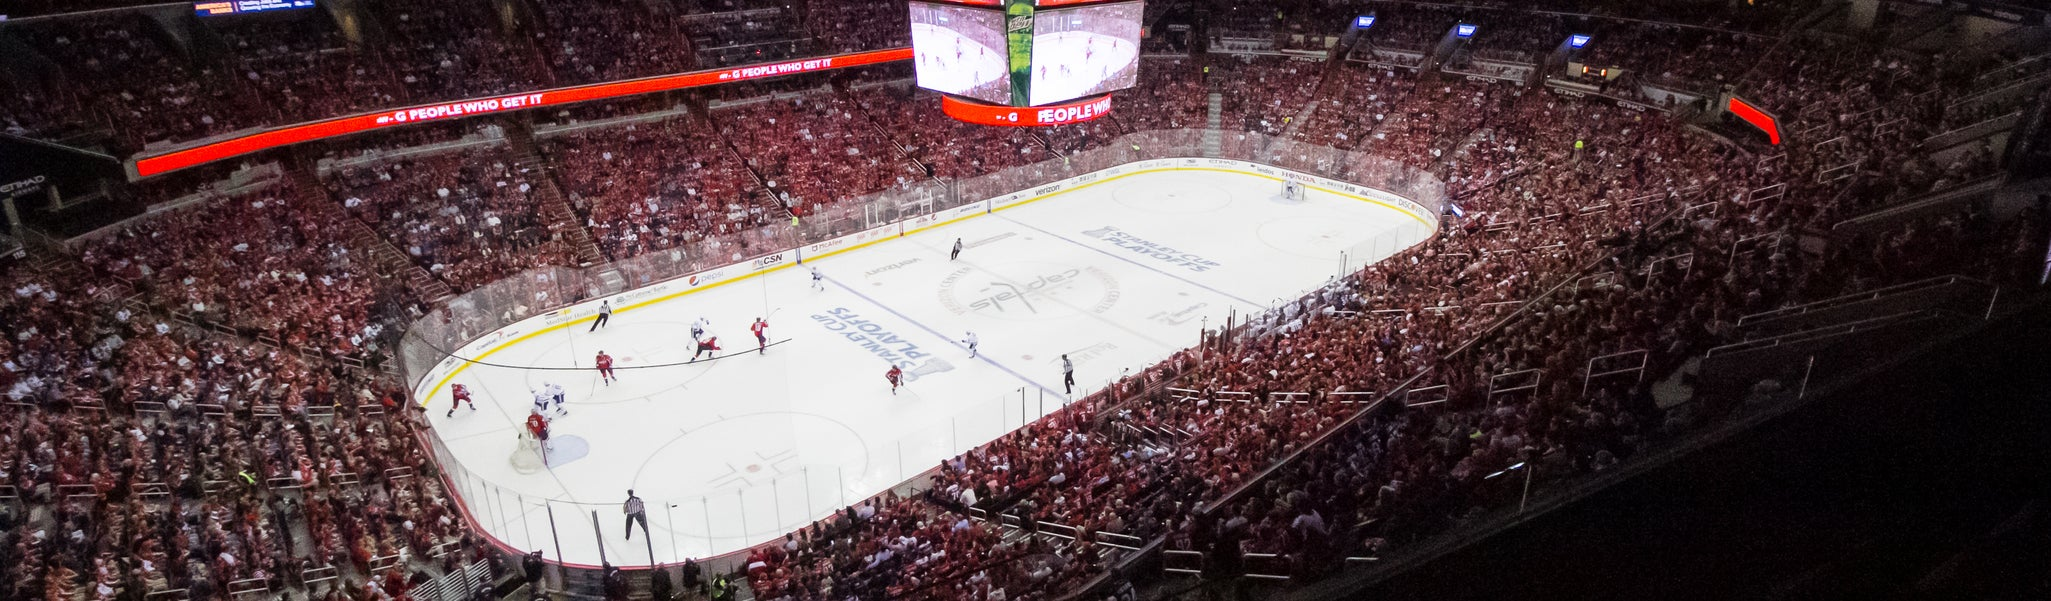 Seat view from Mezzanine Corner 430 at Capital One Arena